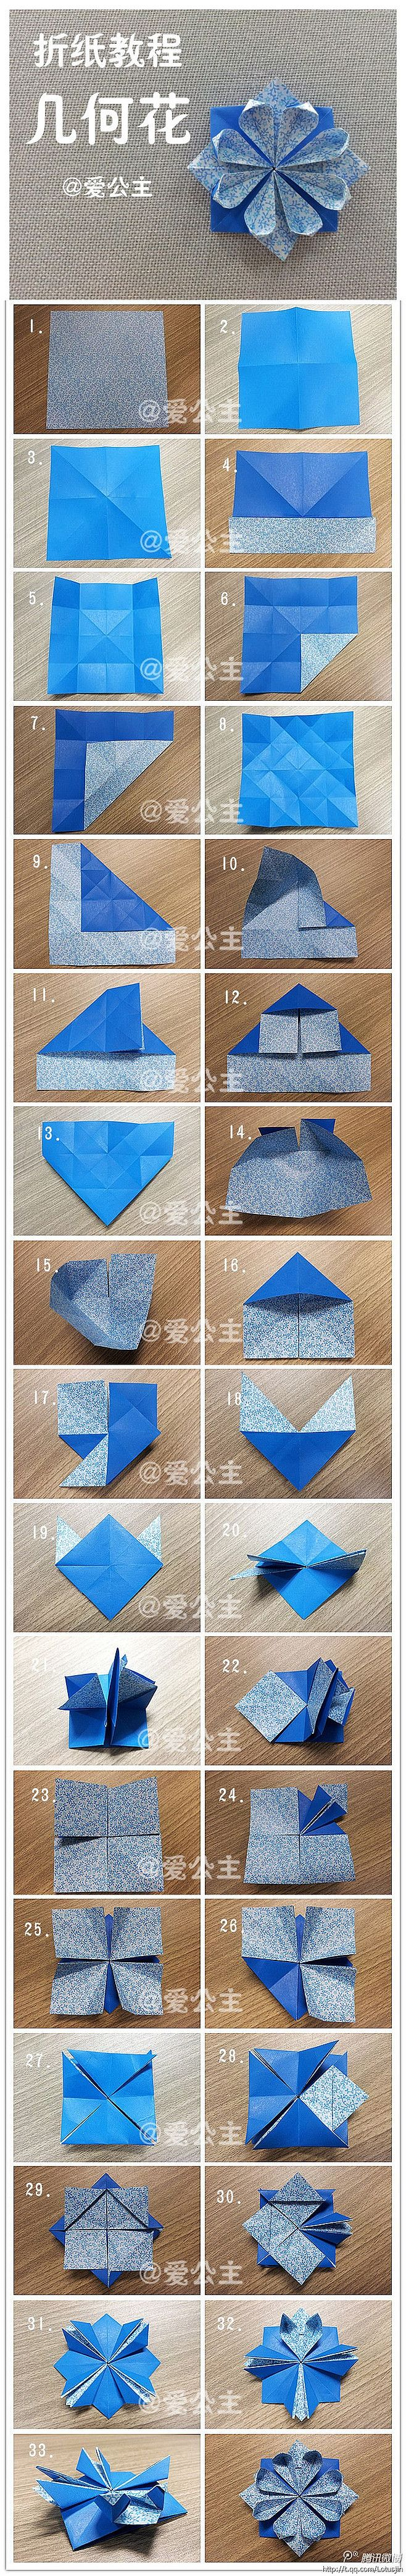 DIY handmade origami whisper pictures